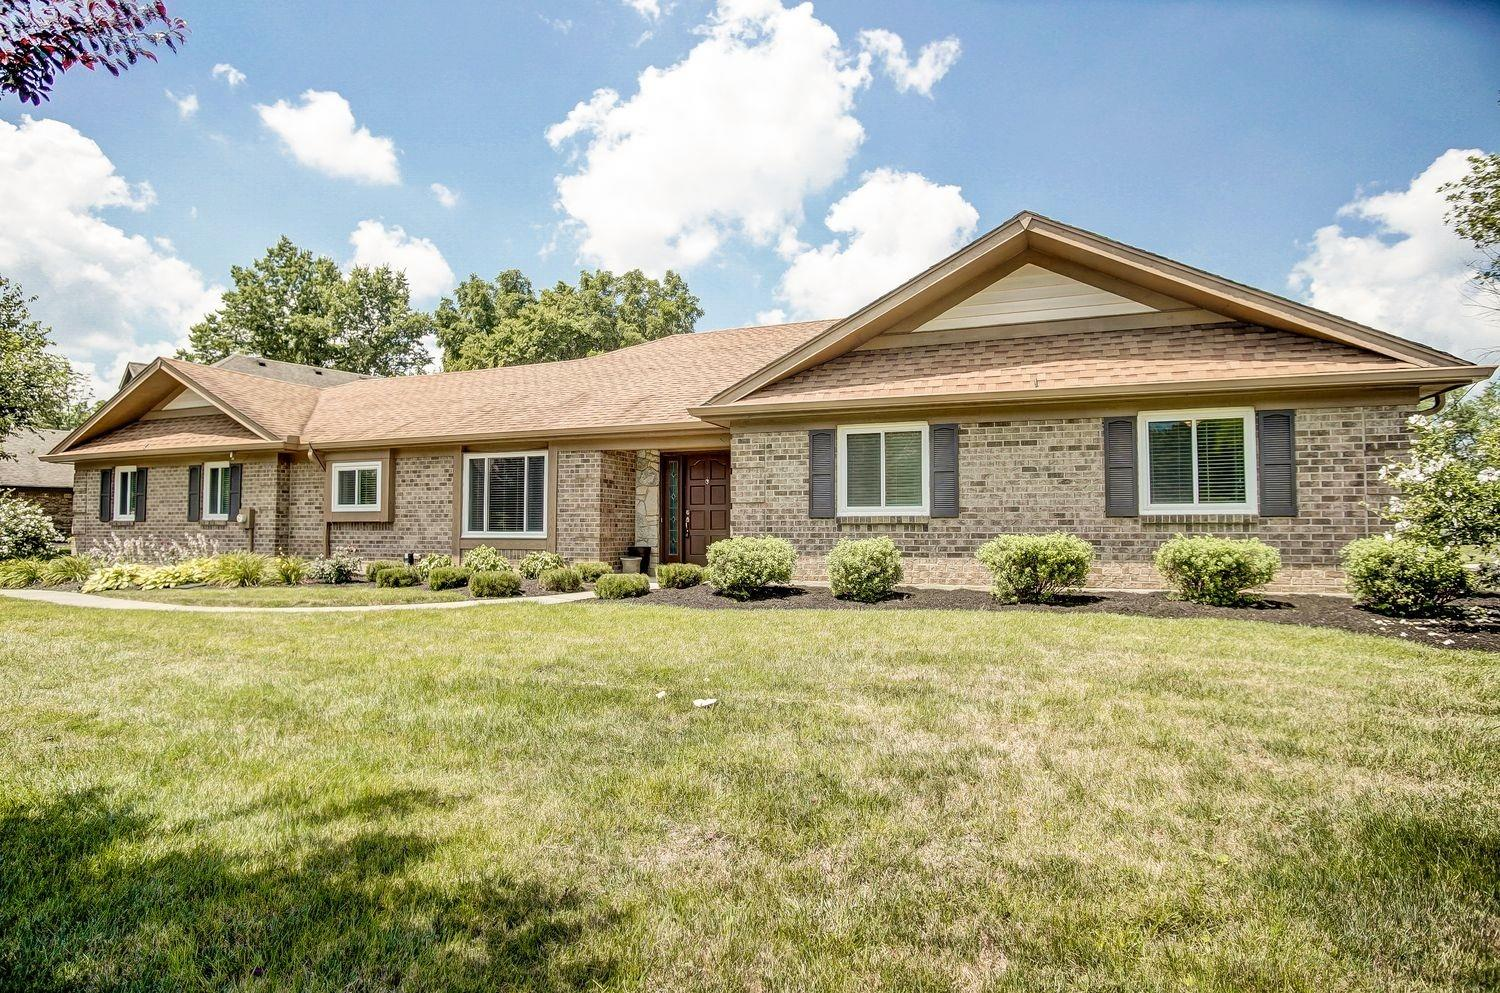 8681 Withersfield Ct Clear Creek Twp., OH